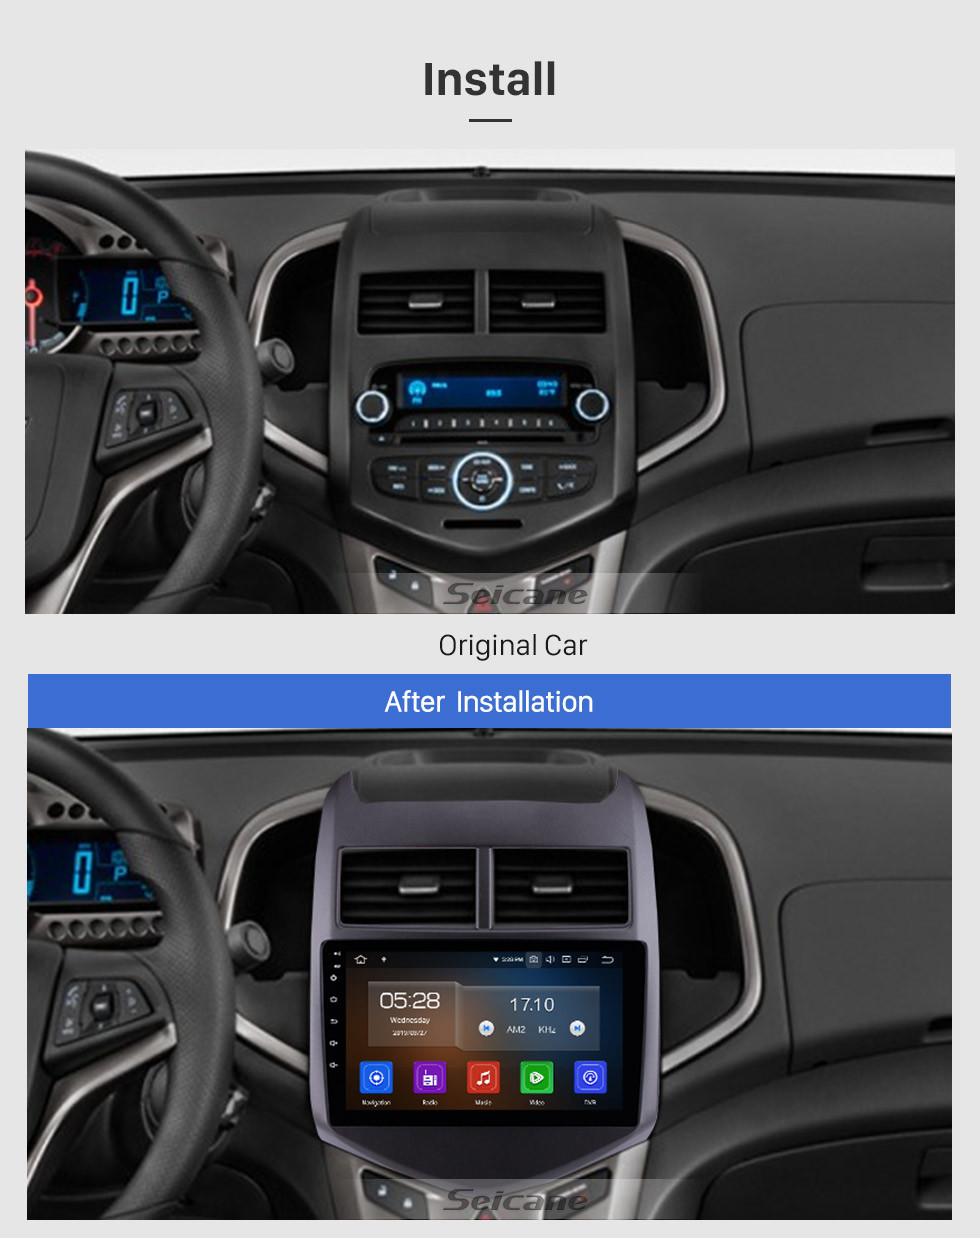 Seicane 2010 2011 2012 2013 Chevy Chevrolet AVEO Autoradio Android 10.0 Radio GPS-Navigationssystem Bluetooth HD Touchscreen Wlan Spiegel-Verbindung Rückfahrkamera Unterstützung DVR 1080P Video OBD DVD Player